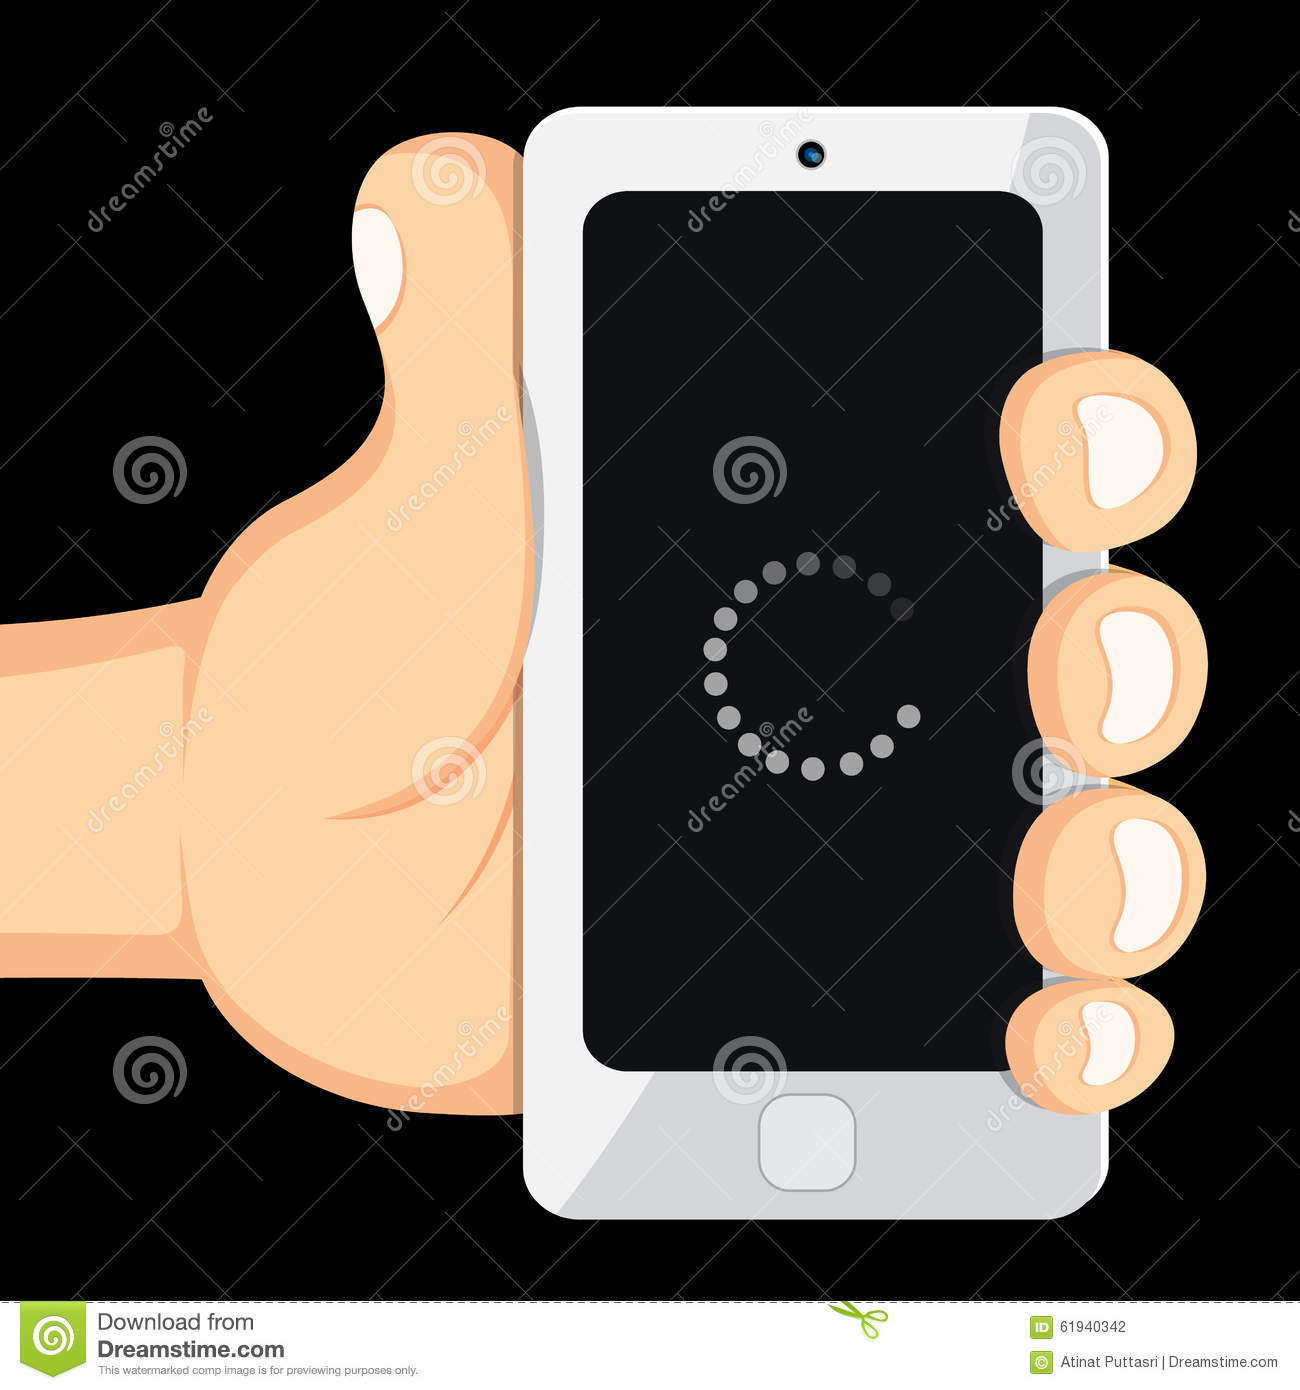 Hand Holding Phone Stock Vector - Image: 61940342